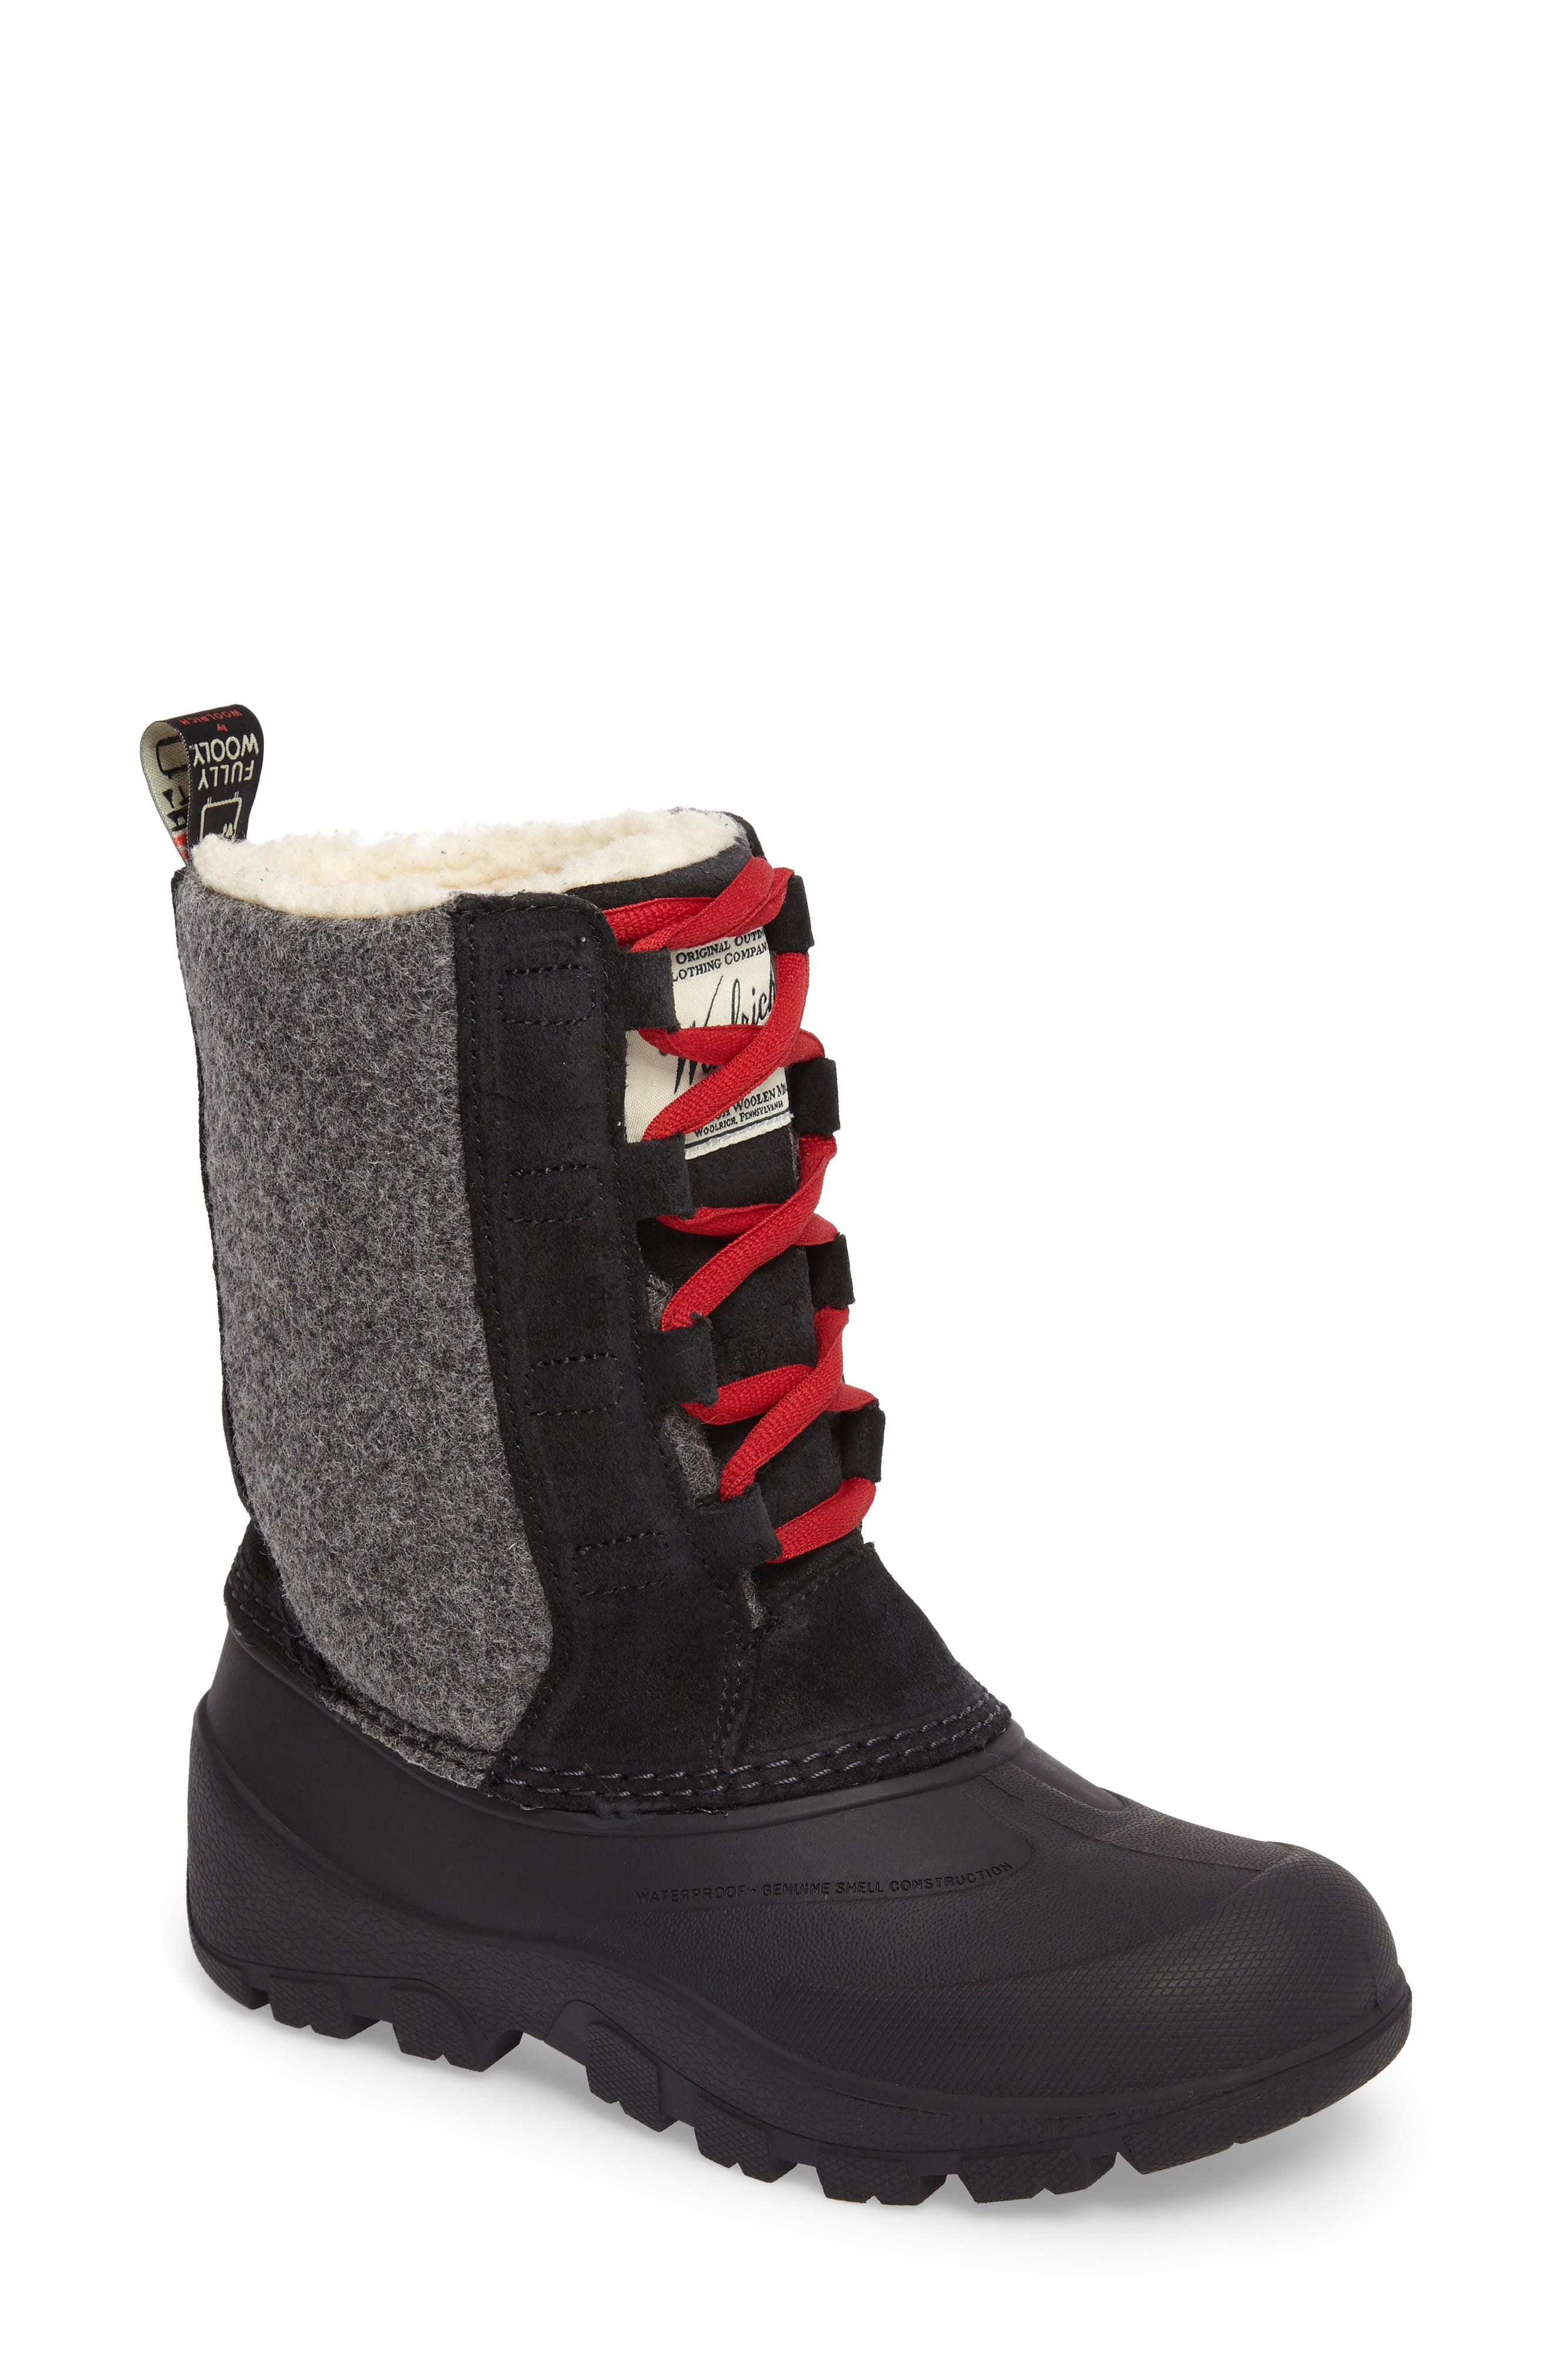 Fully Wooly Tundracat Waterproof Insulated Winter Boot,                         Main,                         color, Black Leather